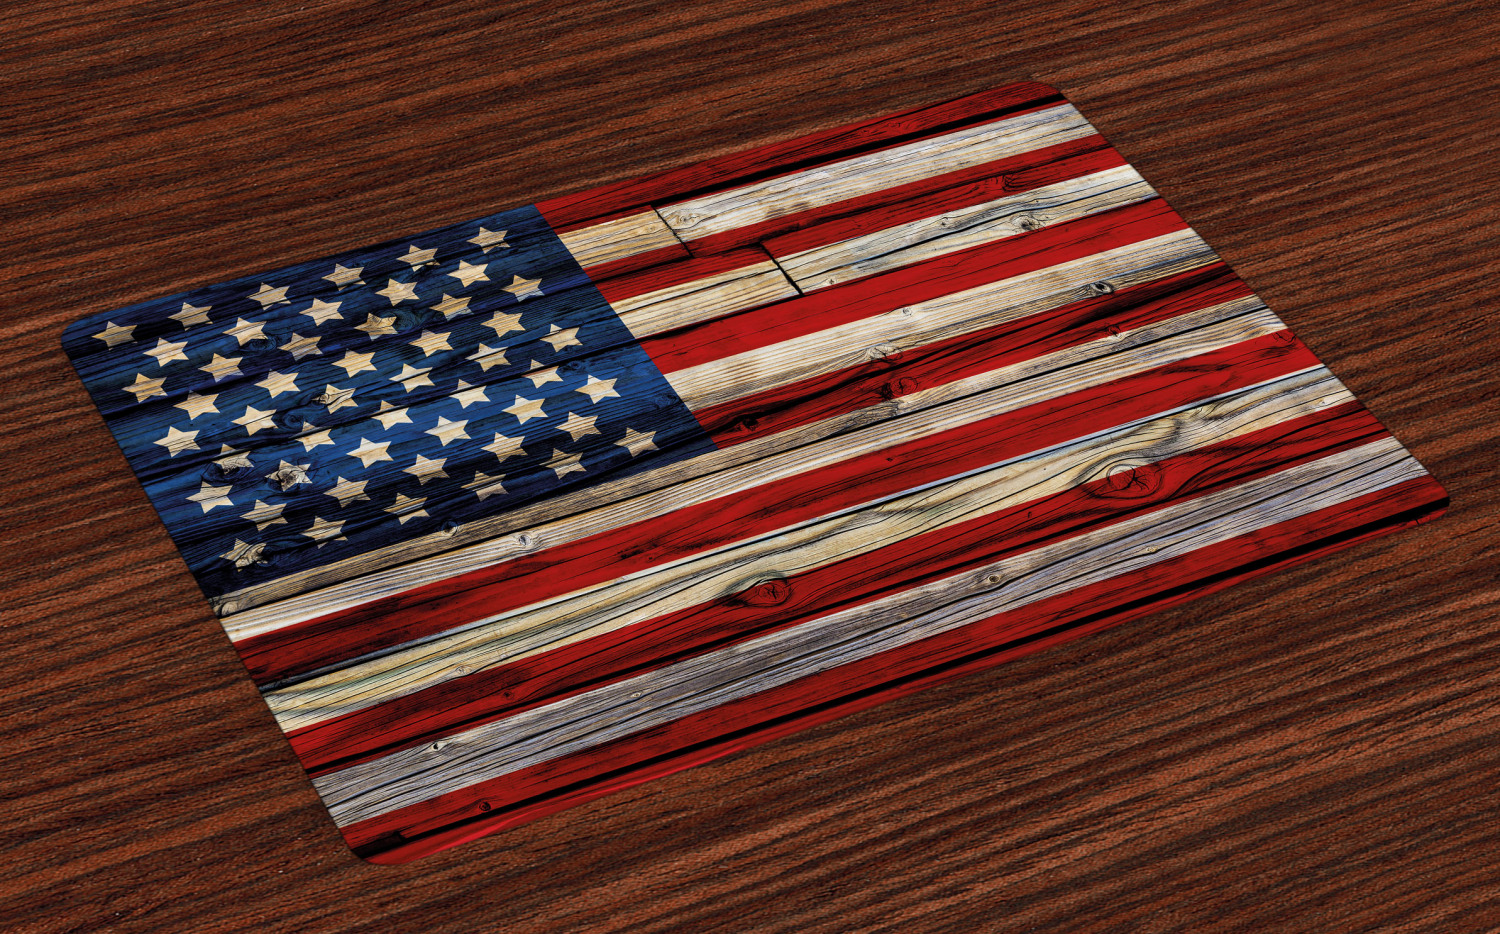 4th of July wooden planks placemats by Ambesonne